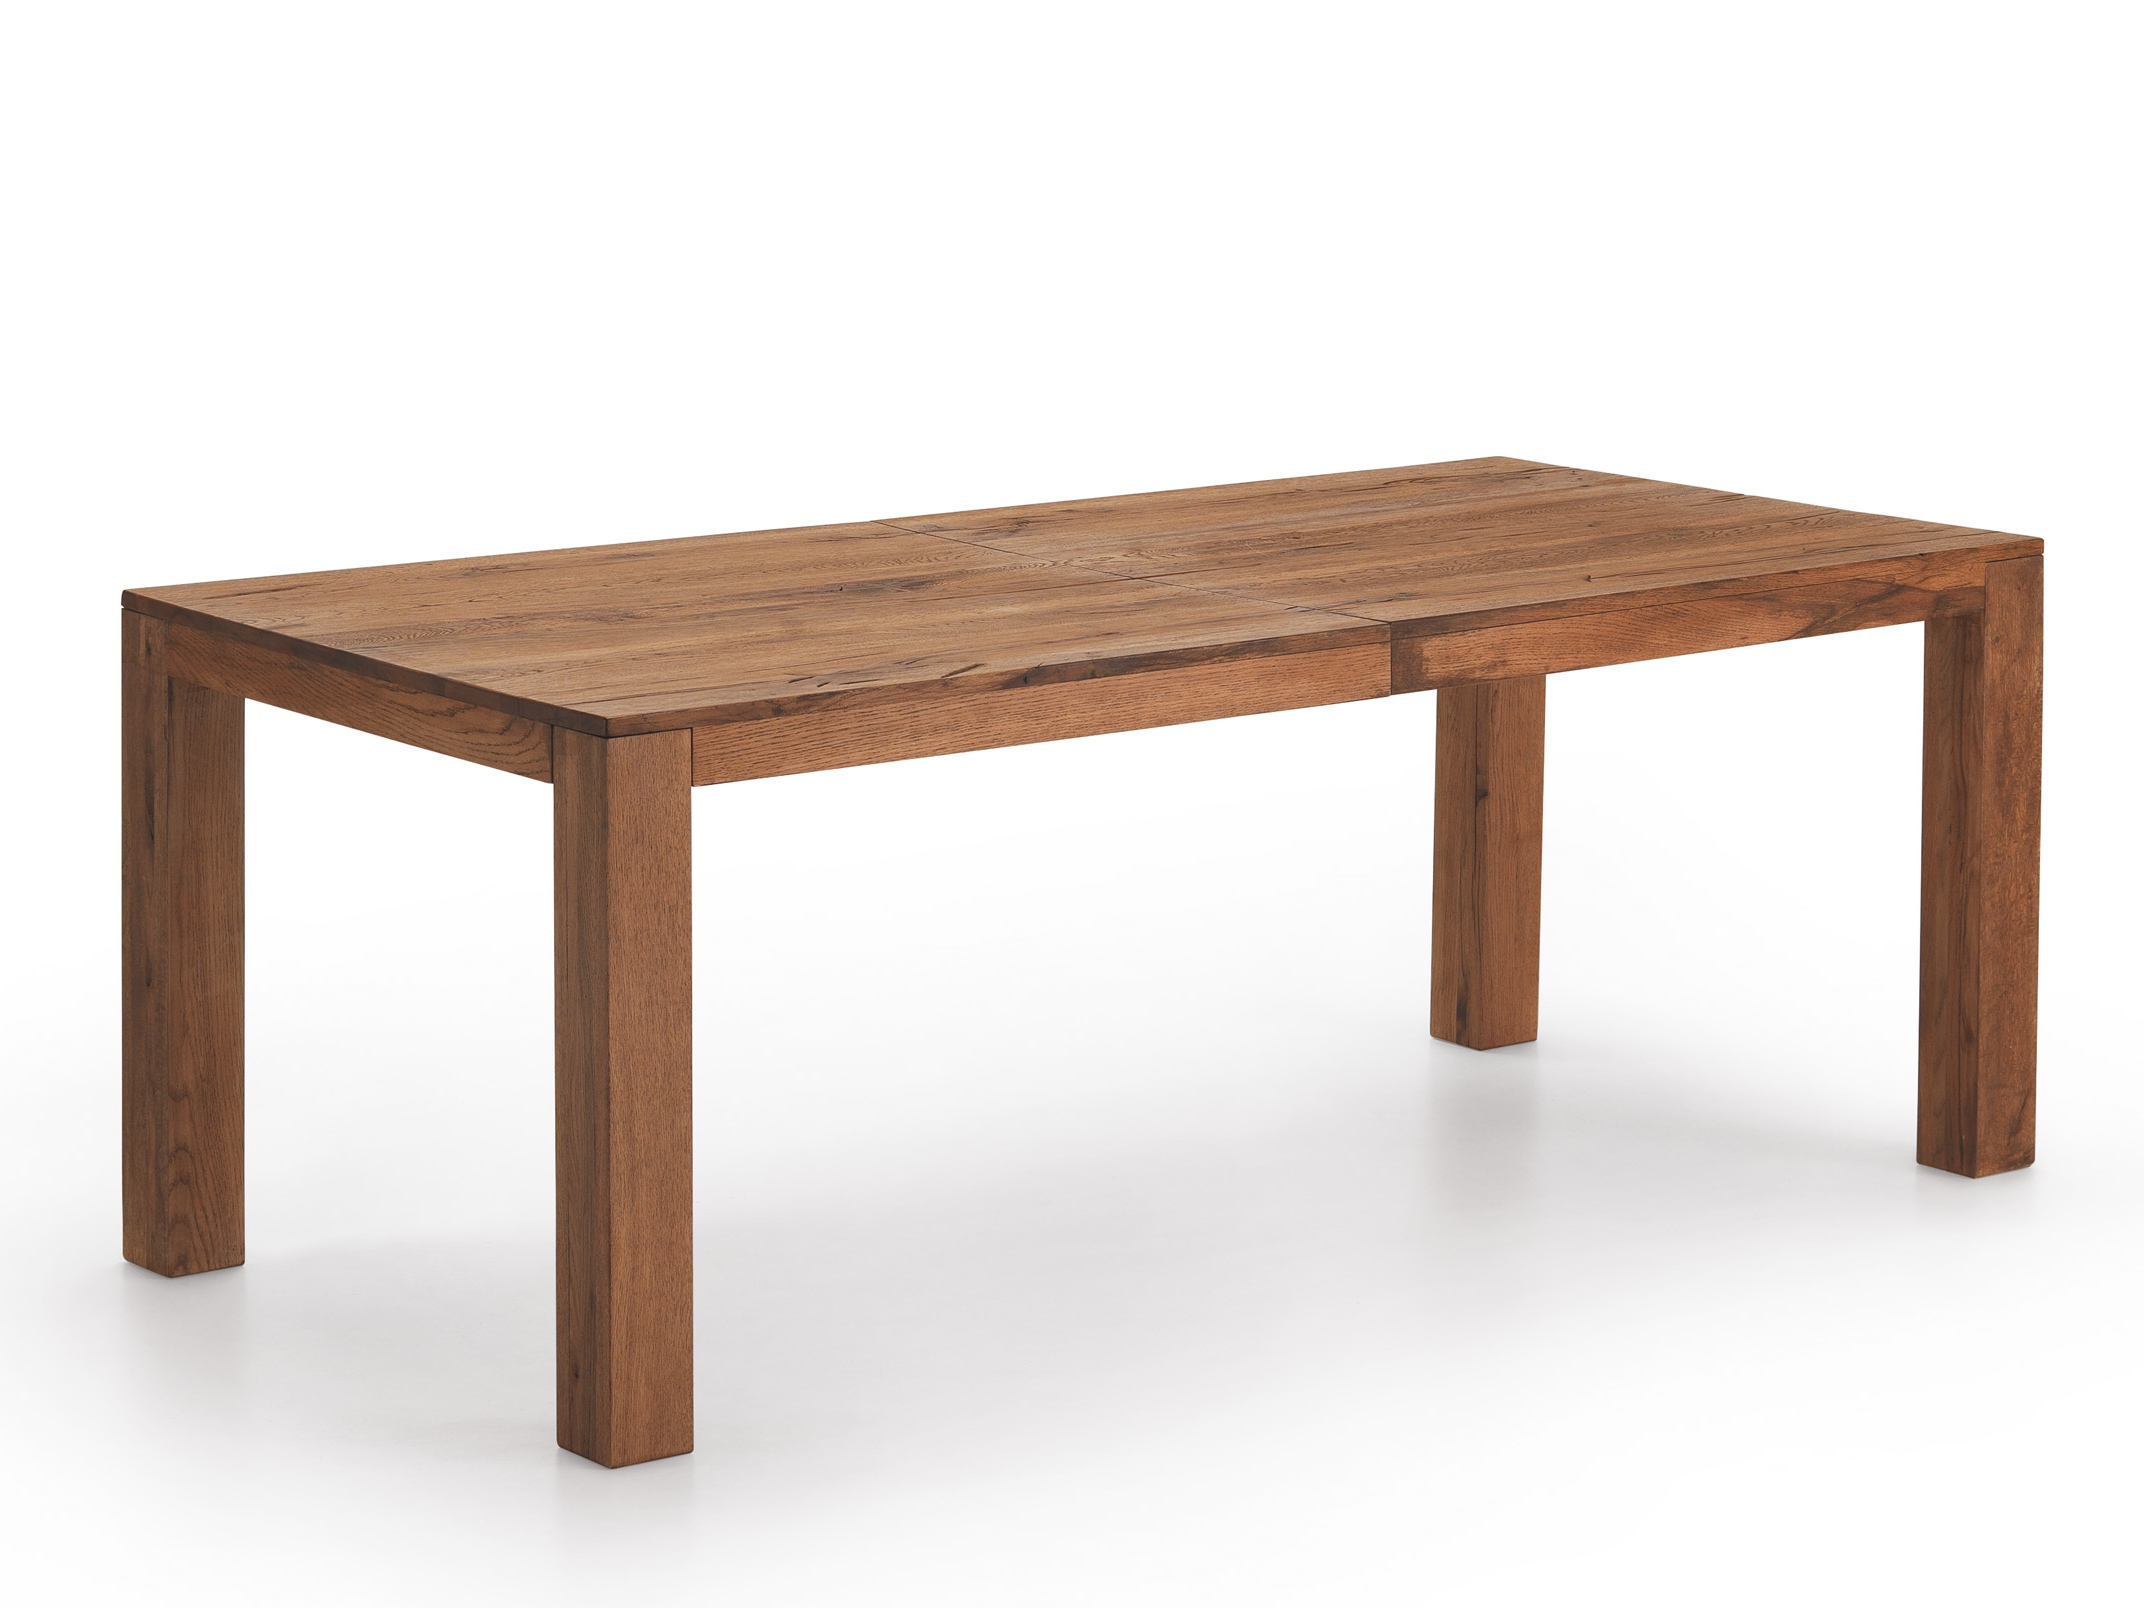 Extending wooden table COPENHAGEN EXT Oliver B Wild Collection By